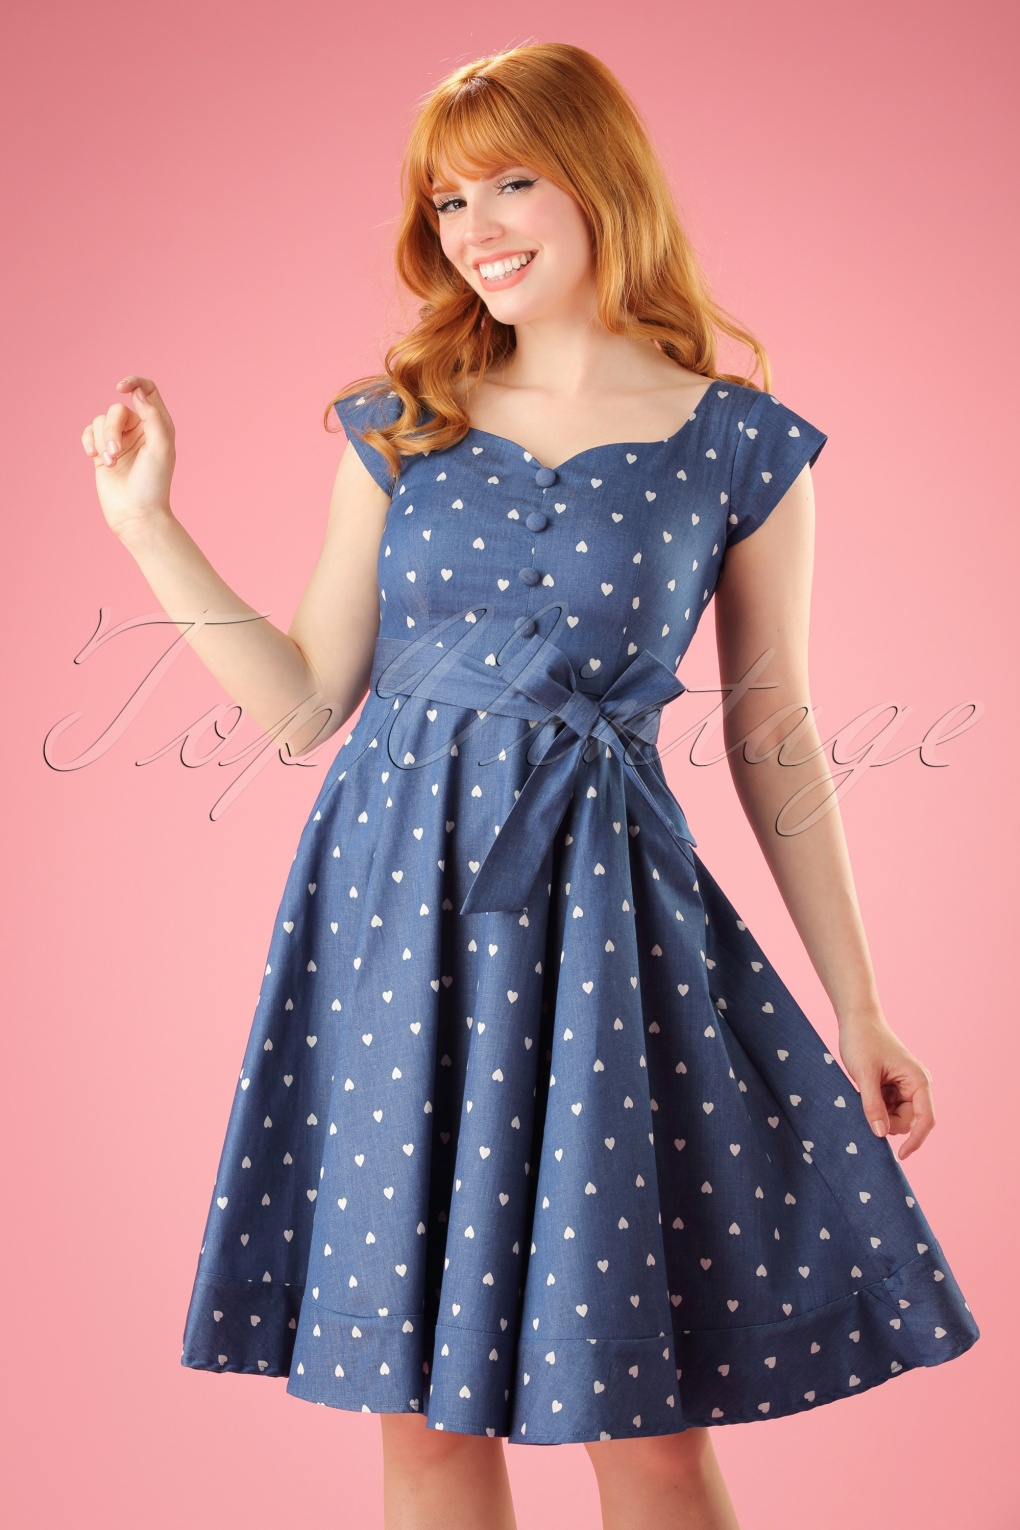 Pin Up Dresses | Pinup Clothing & Fashion 50s Judy Hearts Swing Dress in Denim �53.37 AT vintagedancer.com